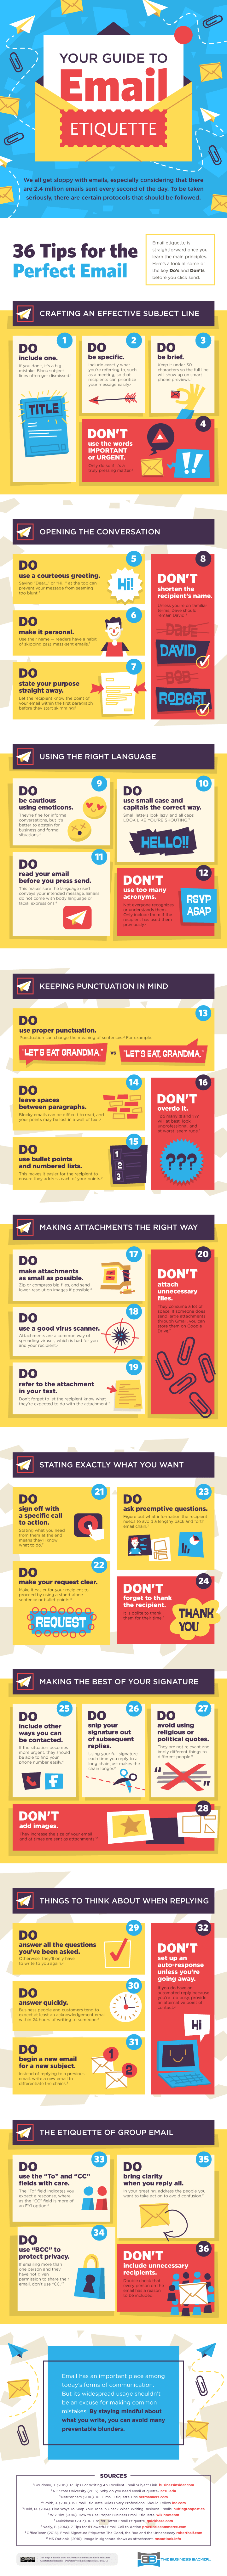 Email etiquette guide infographic